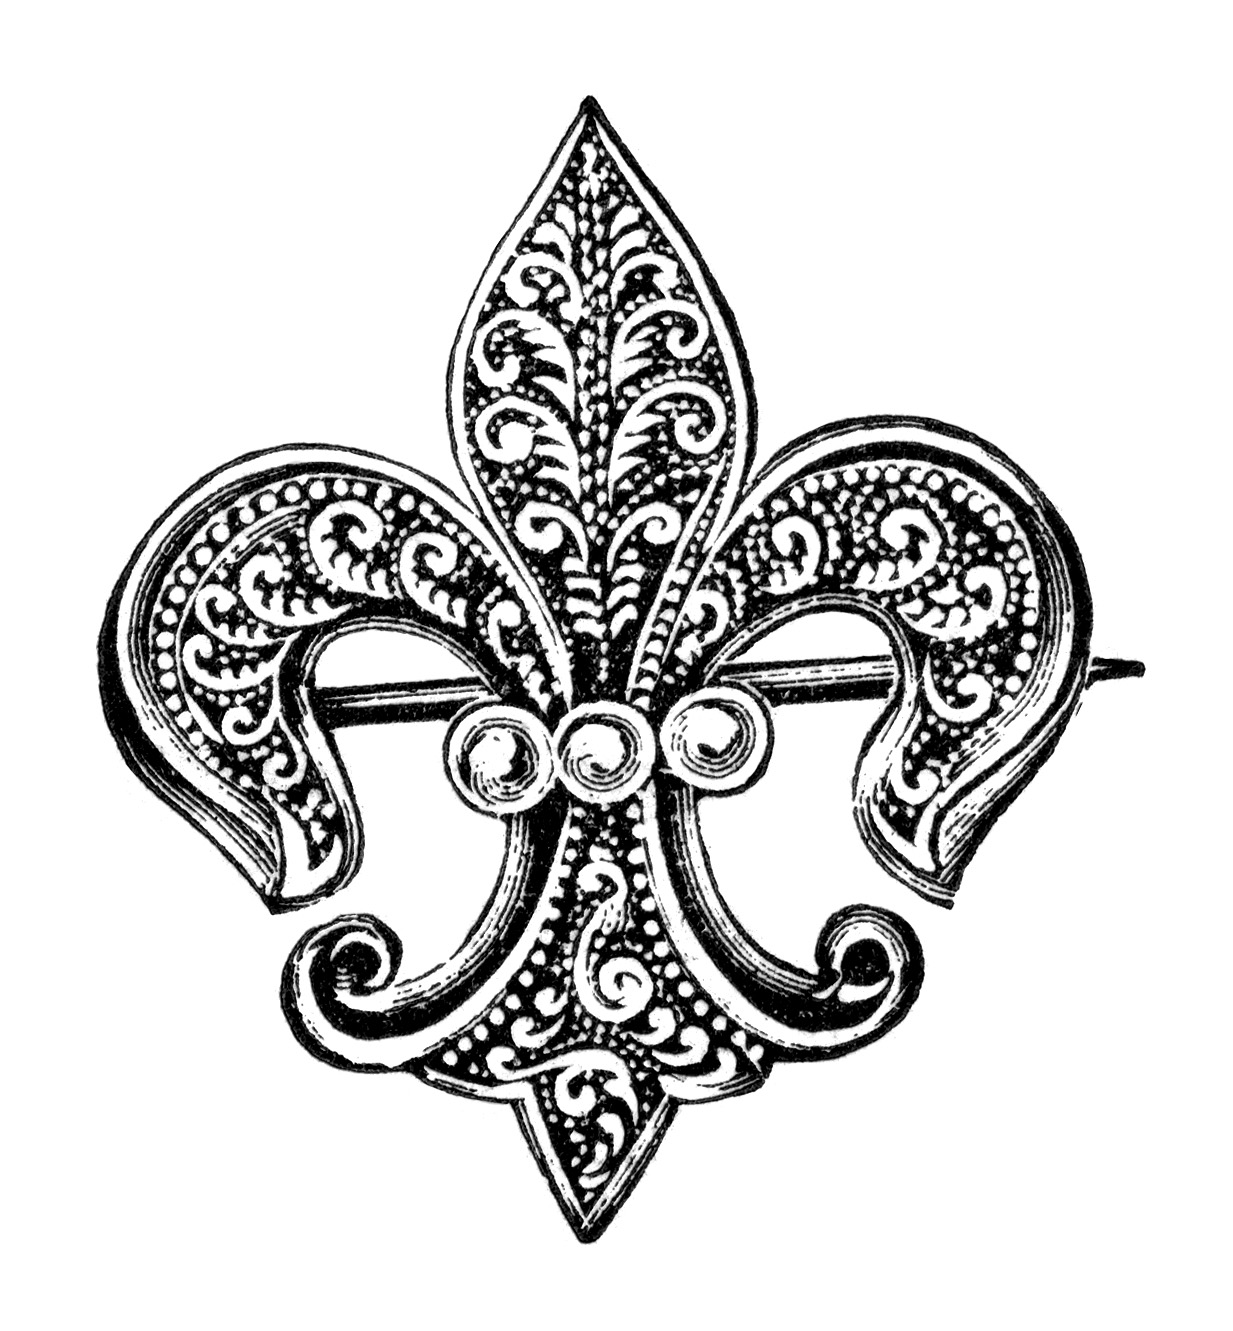 Vintage Brooch Clipart Fleur De Lis Clip Art Antique Brooch With